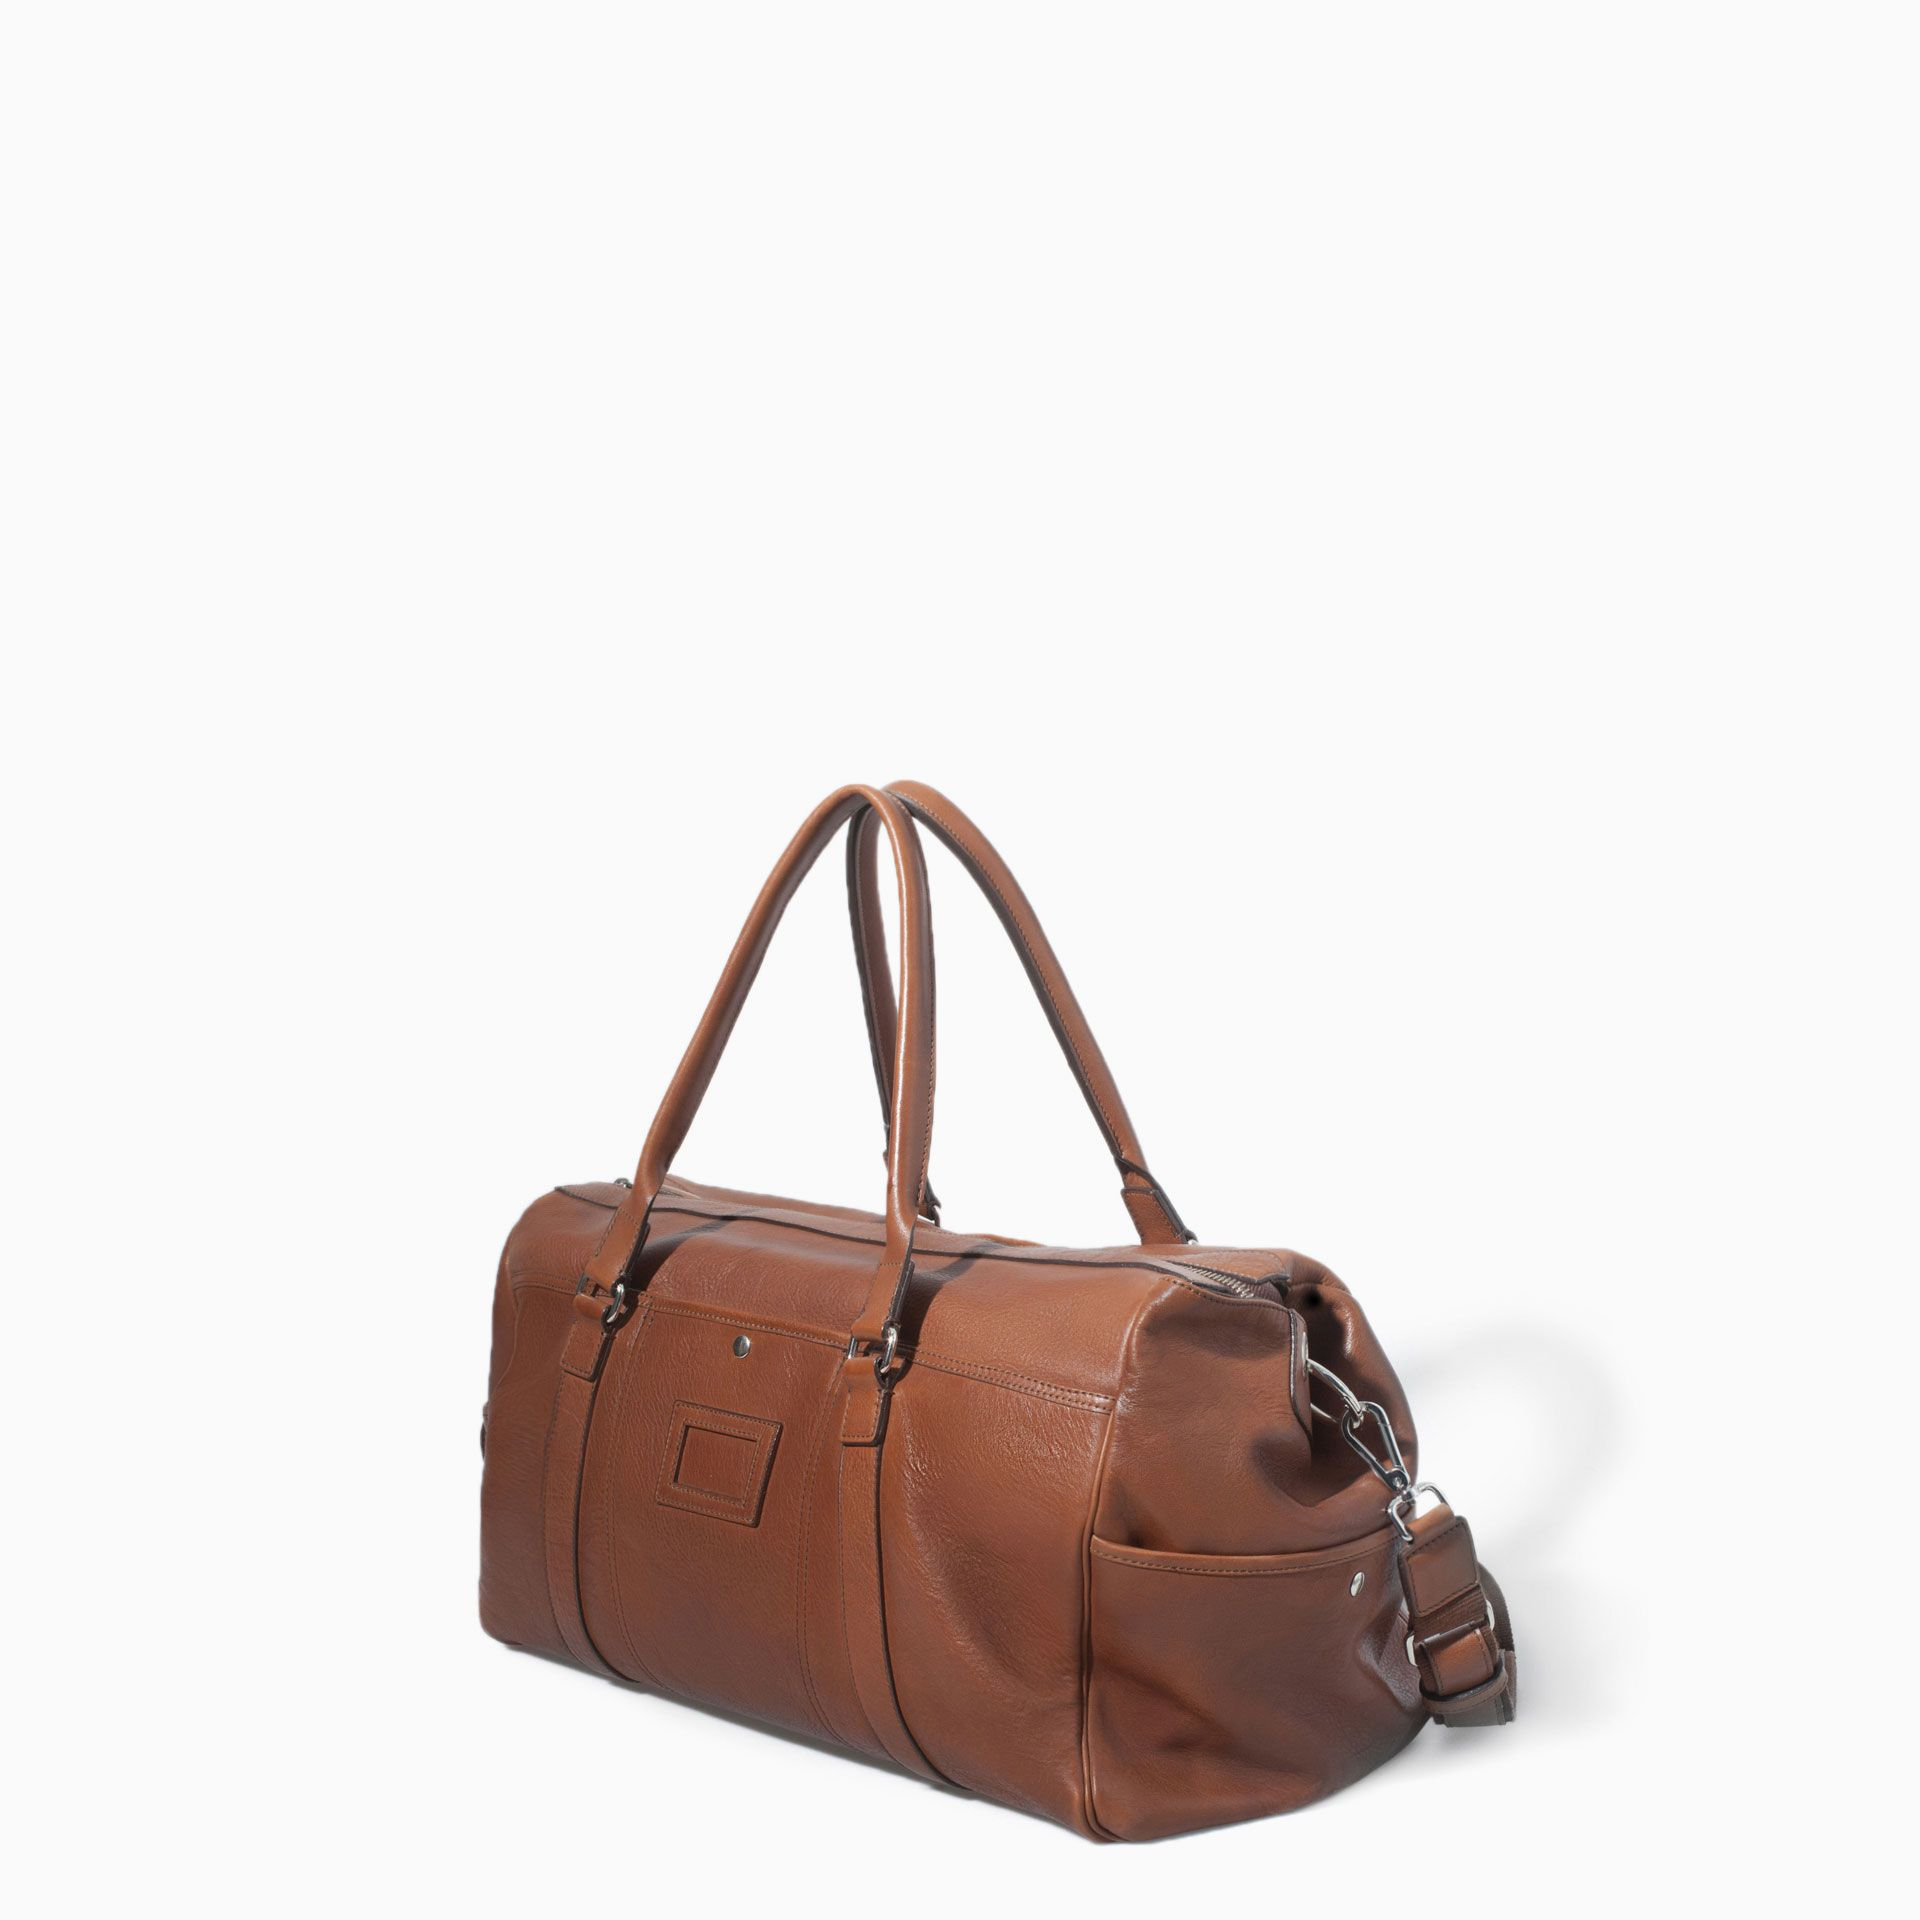 ZARA MAN LEATHER WEEKEND BAG | Leather weekender bag